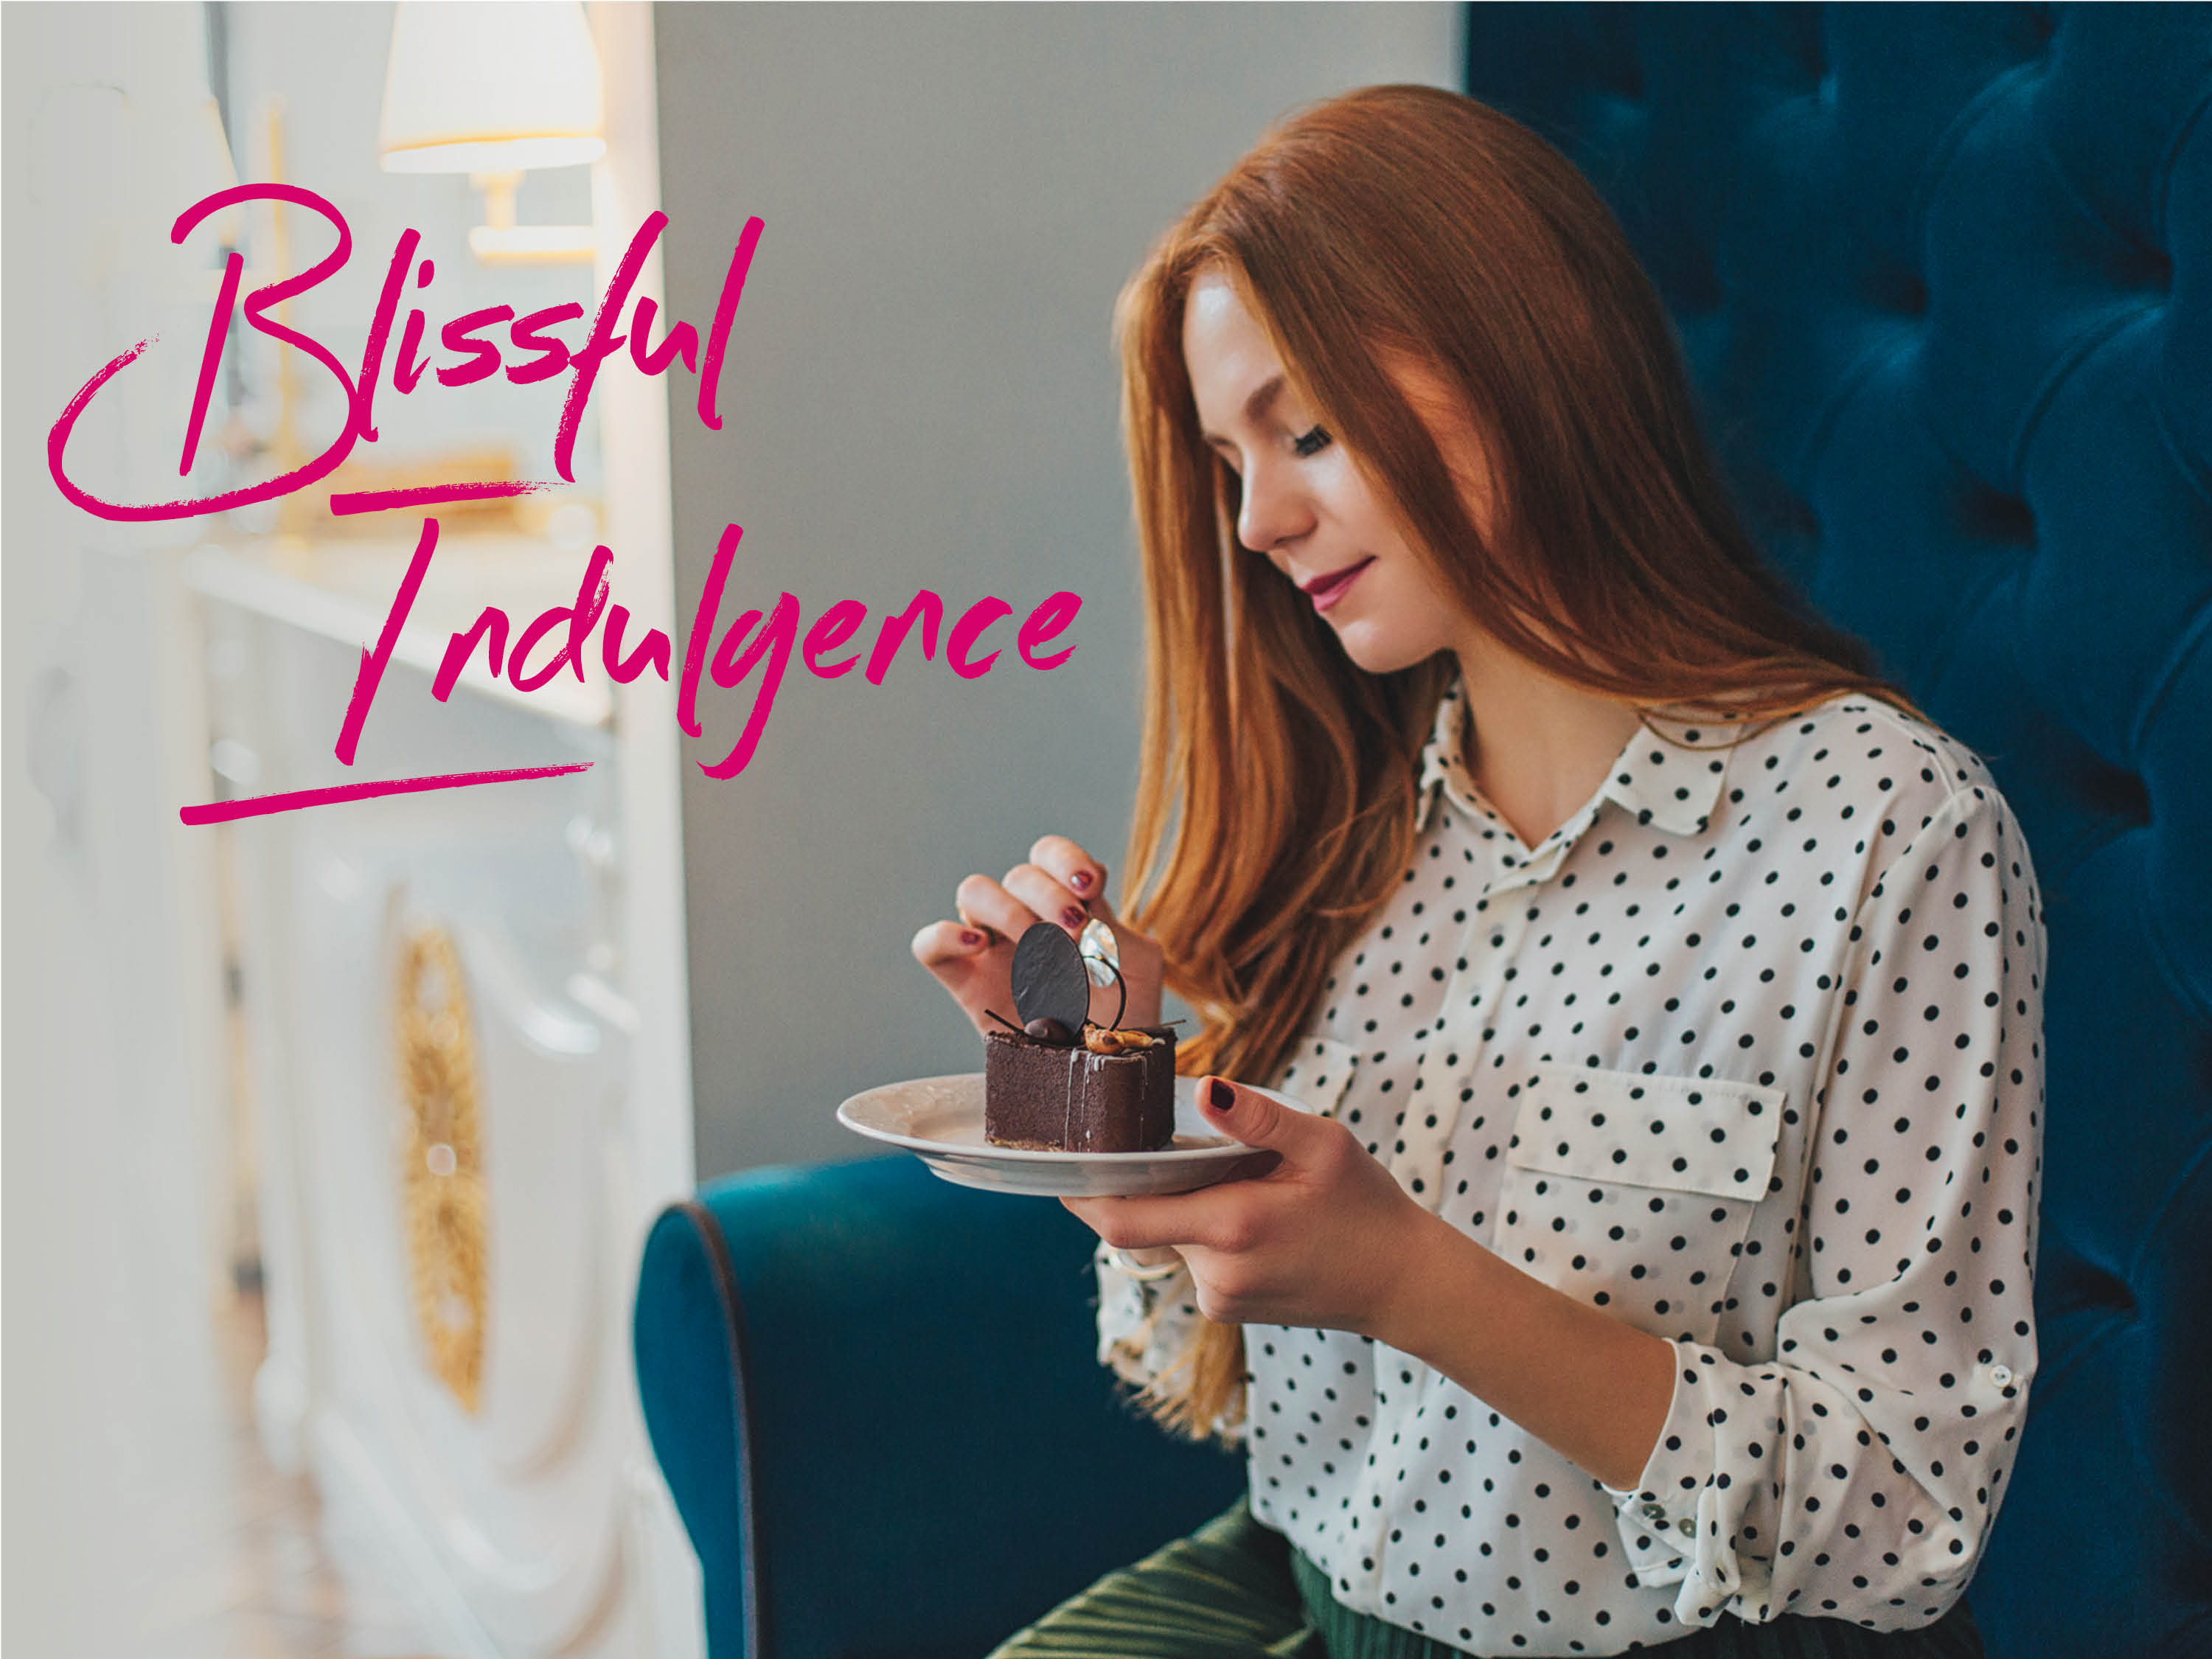 blissful_indulgence-Trends2020-lowres